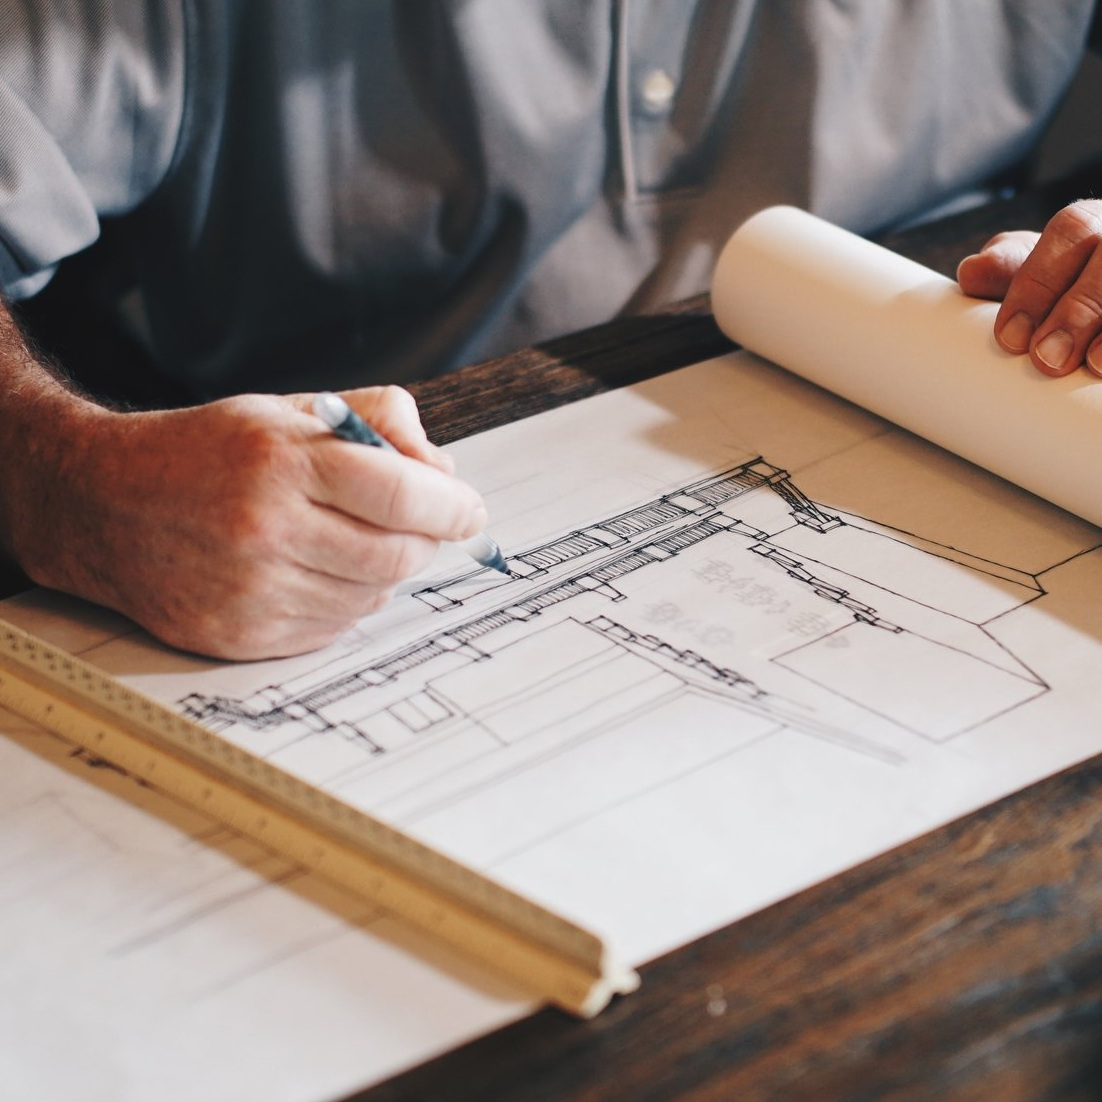 6. Estimating - After successfully completing a design that meets your objectives, we will commence with the final estimate. During this phase we will calculate materials and verify final costs with our trusted trade partners. A meeting will then be scheduled to review a fixed cost proposal and discuss the next steps.